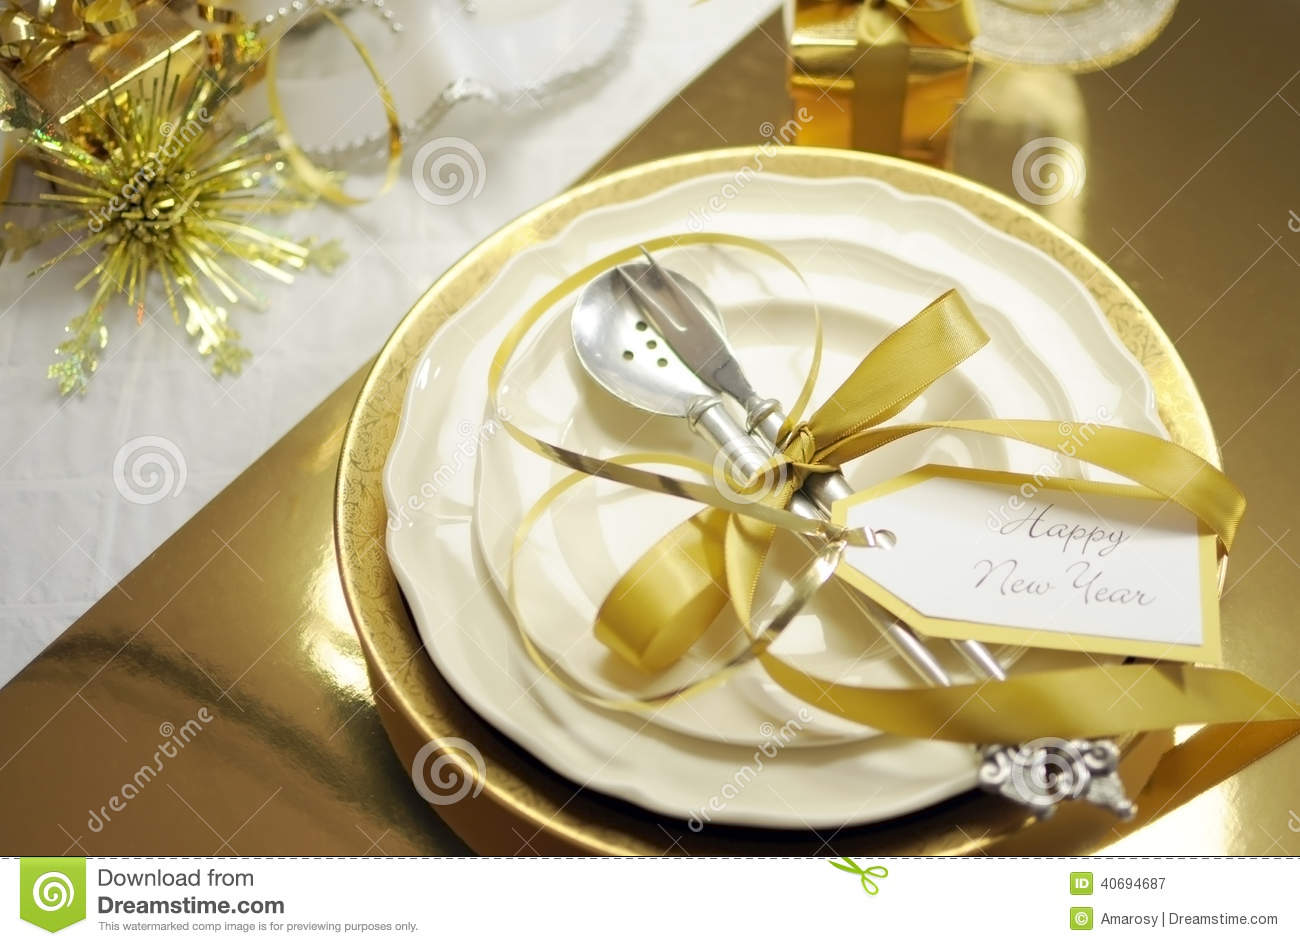 White And Gold Happy New Year Elegant Fine Dining Table  : white gold happy new year elegant fine dining table place setting theme christmas decorations 40694687 from www.dreamstime.com size 1300 x 946 jpeg 125kB